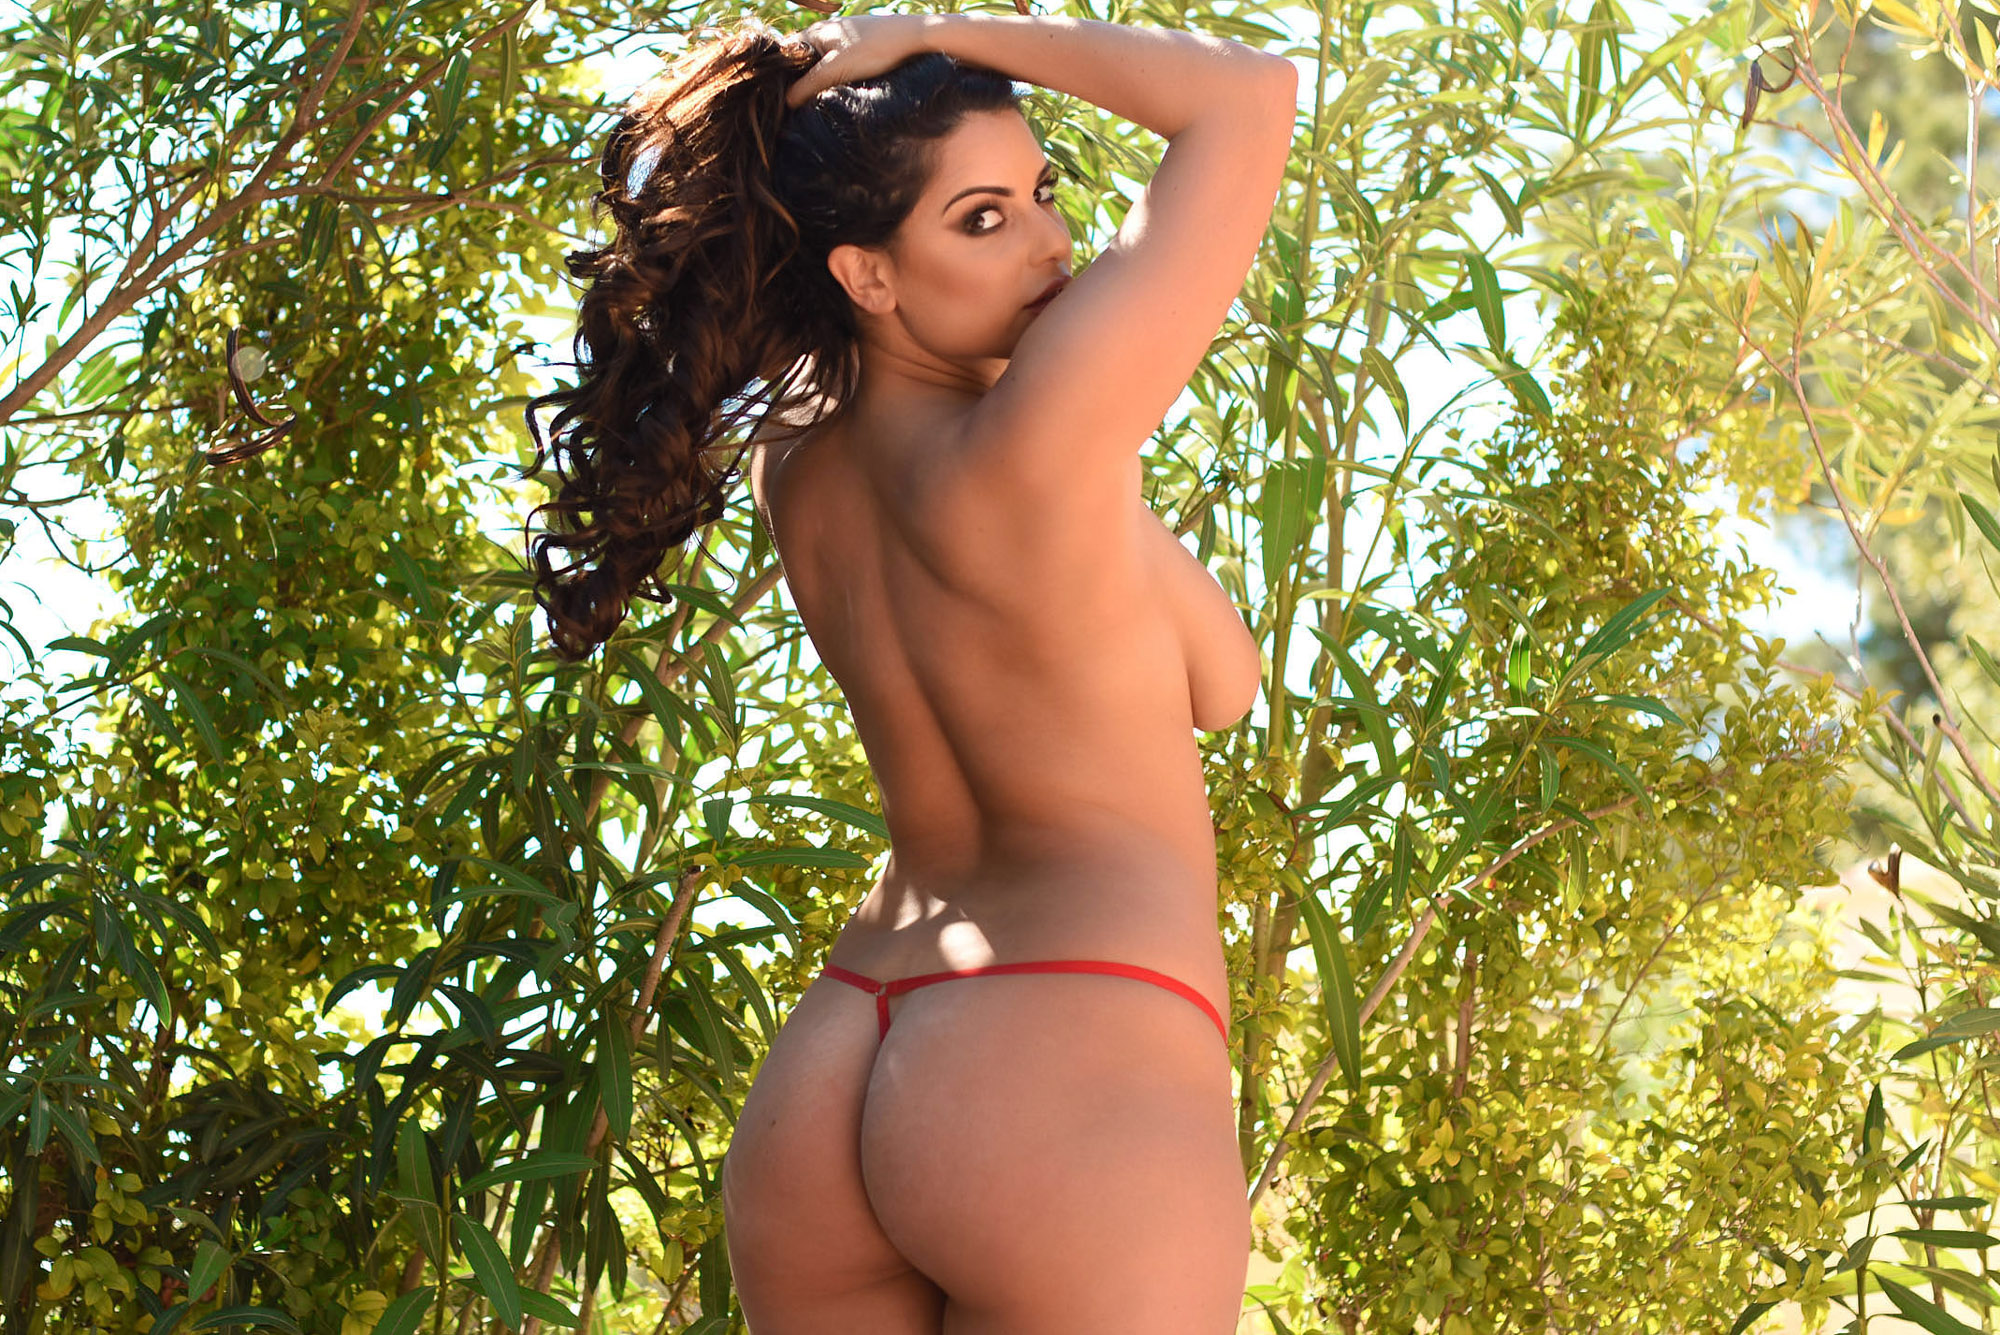 Charley S, brunette, topless, ass, strip, g string, outdoors